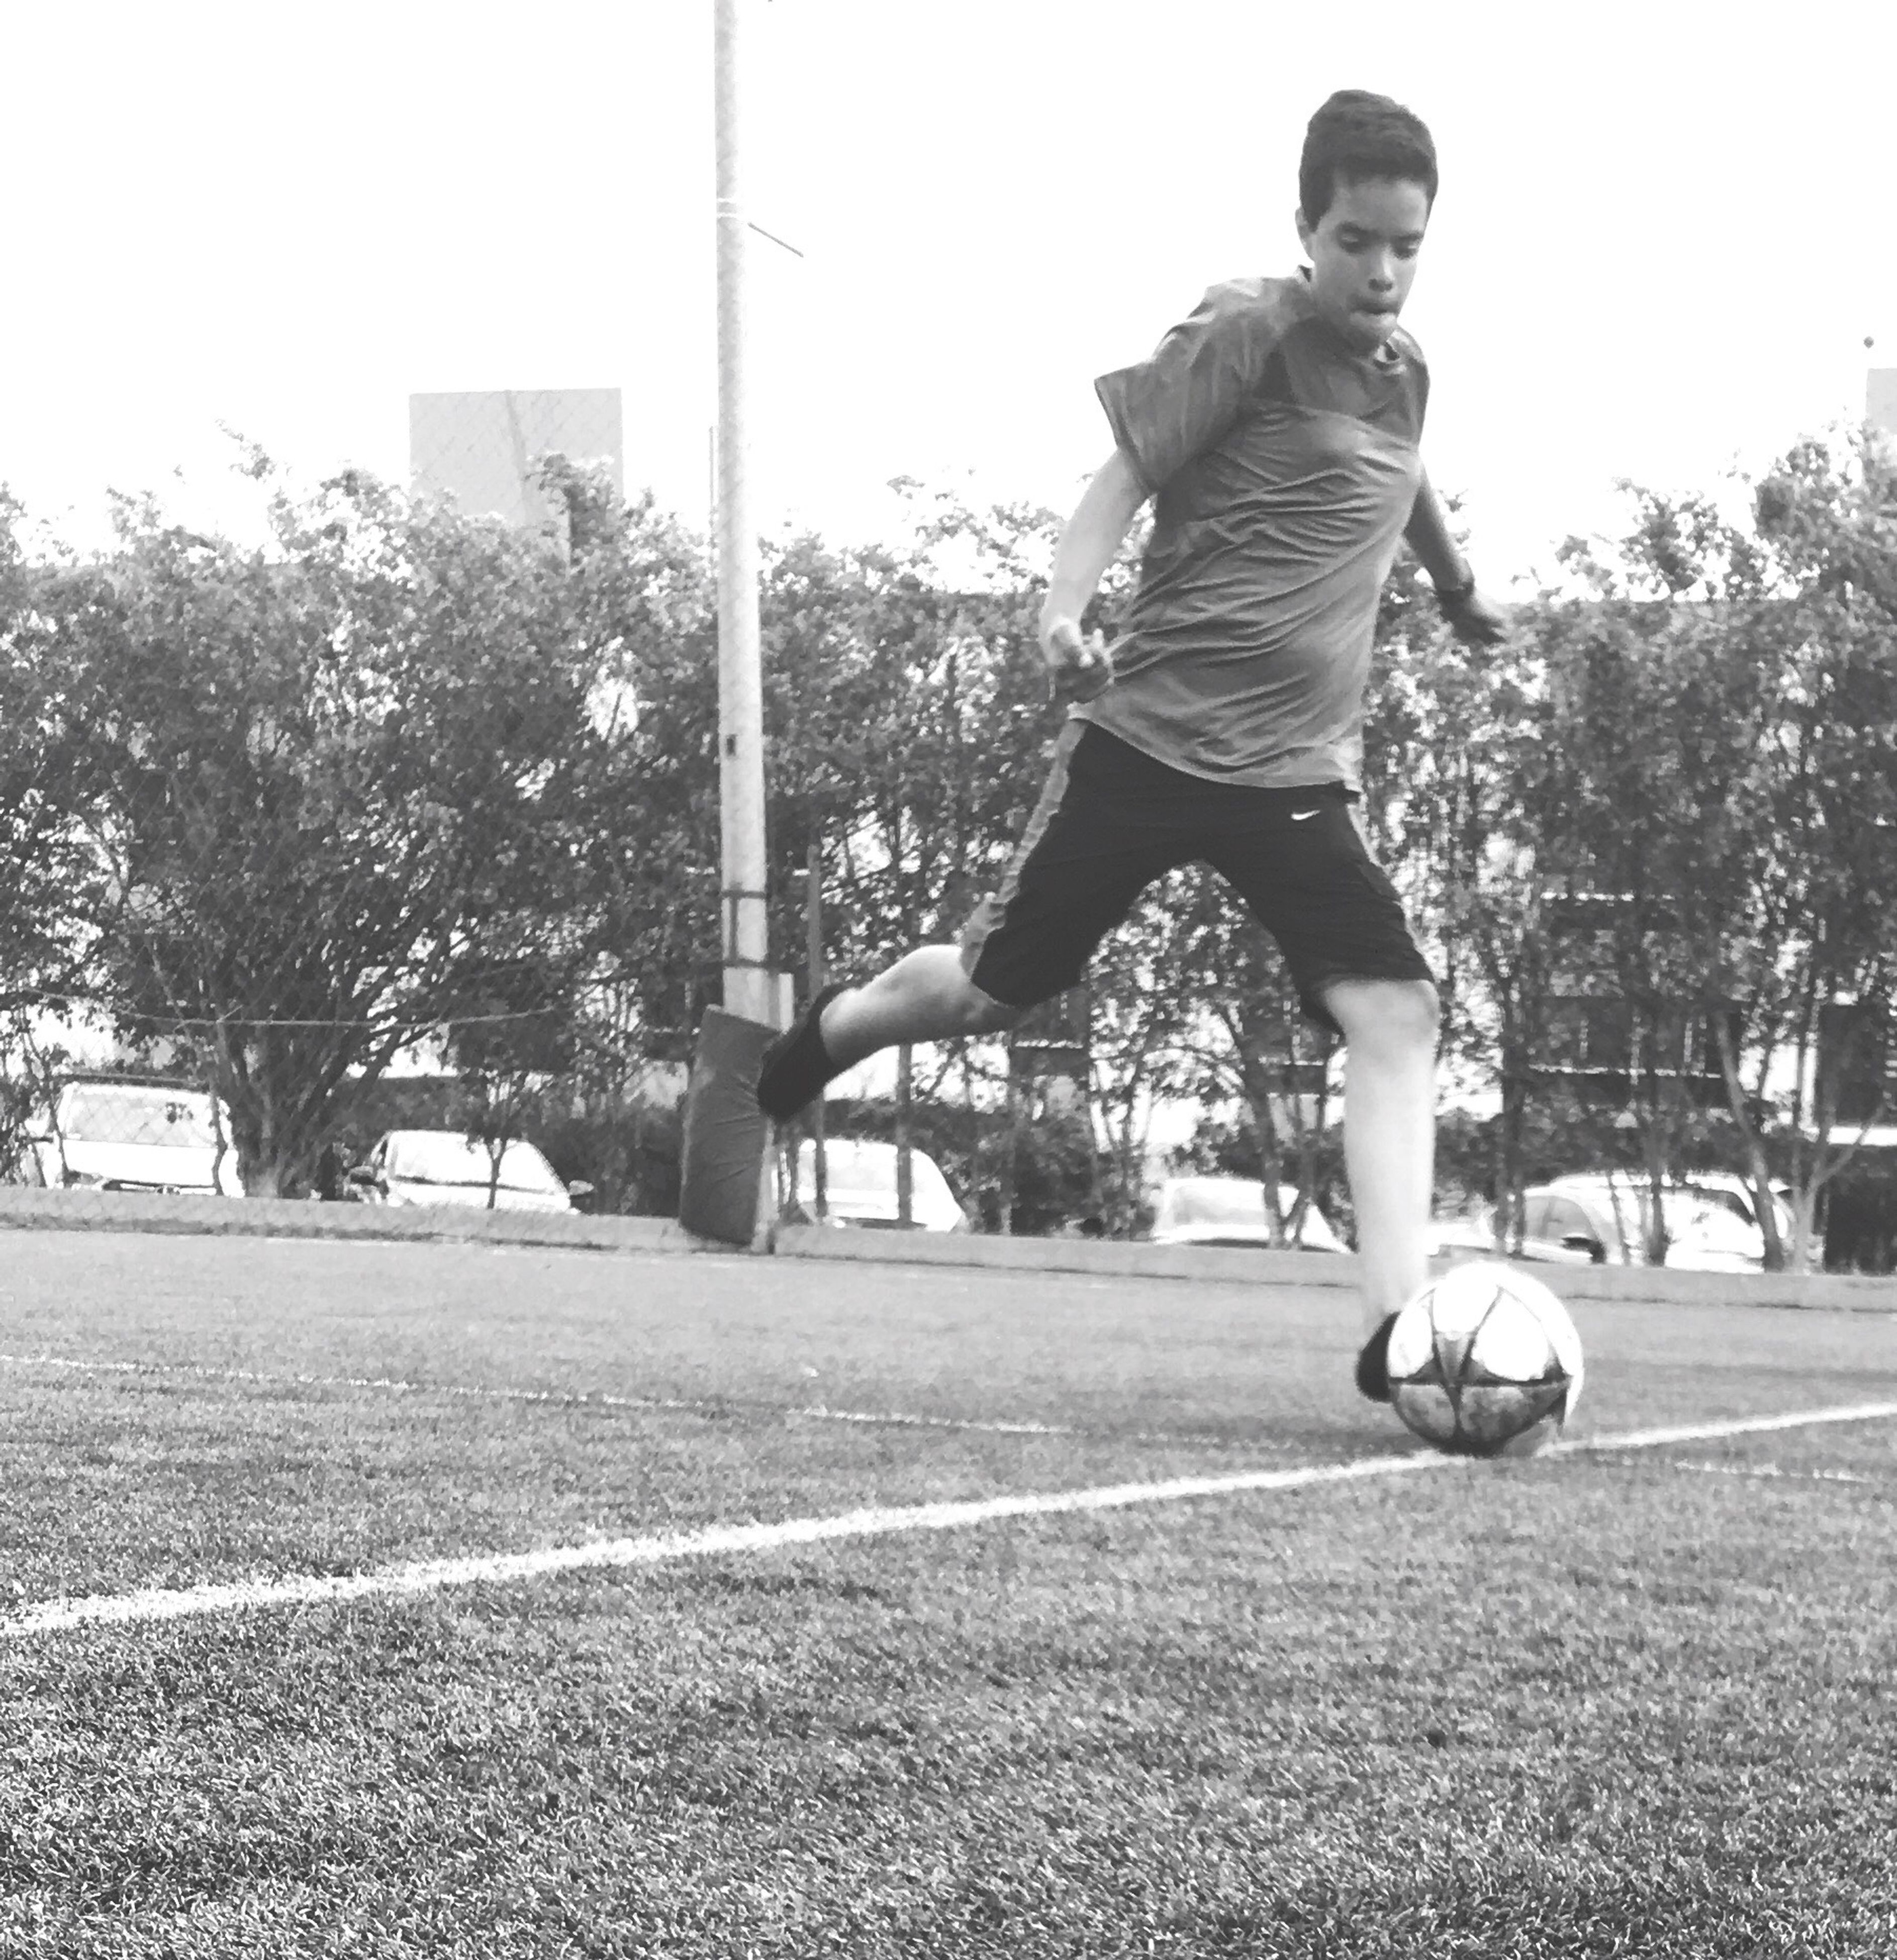 full length, mid-air, jumping, soccer, one person, sport, motion, park - man made space, soccer ball, kicking, playing, outdoors, childhood, ball, tree, skill, day, people, adult, young adult